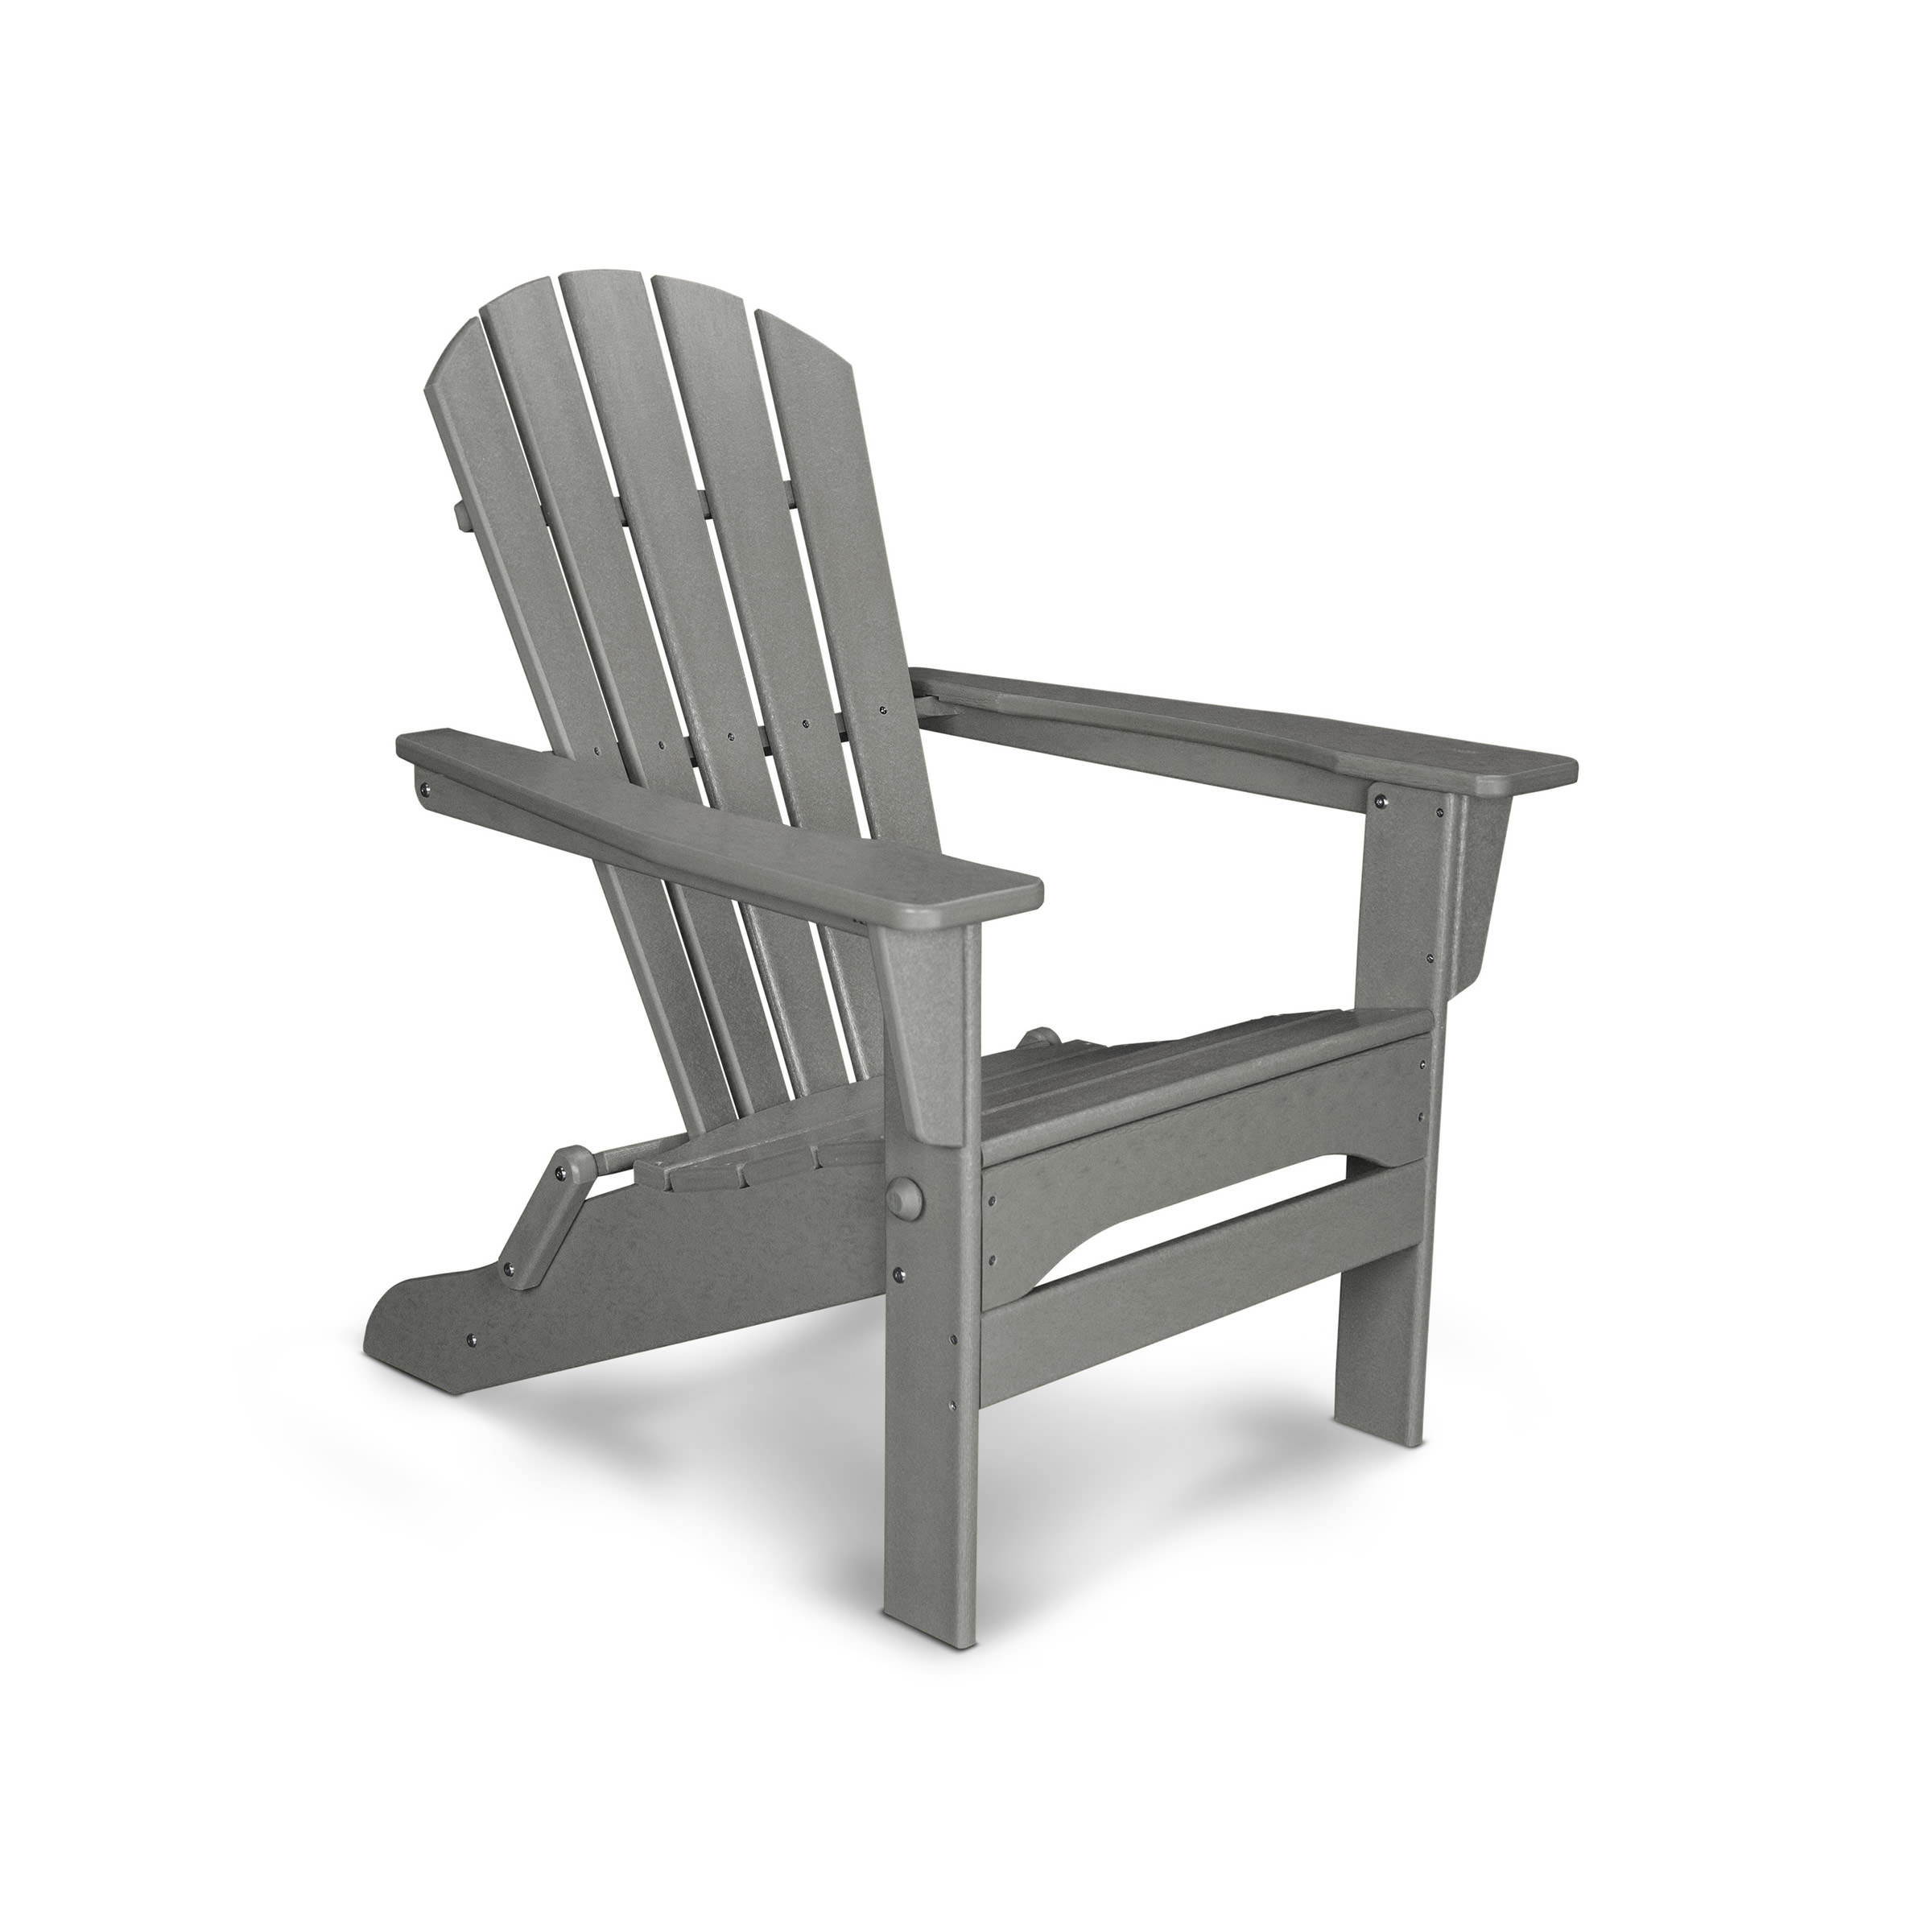 Weatherproof Adirondack Chairs Folding Polywood Adirondack Chair Qasync